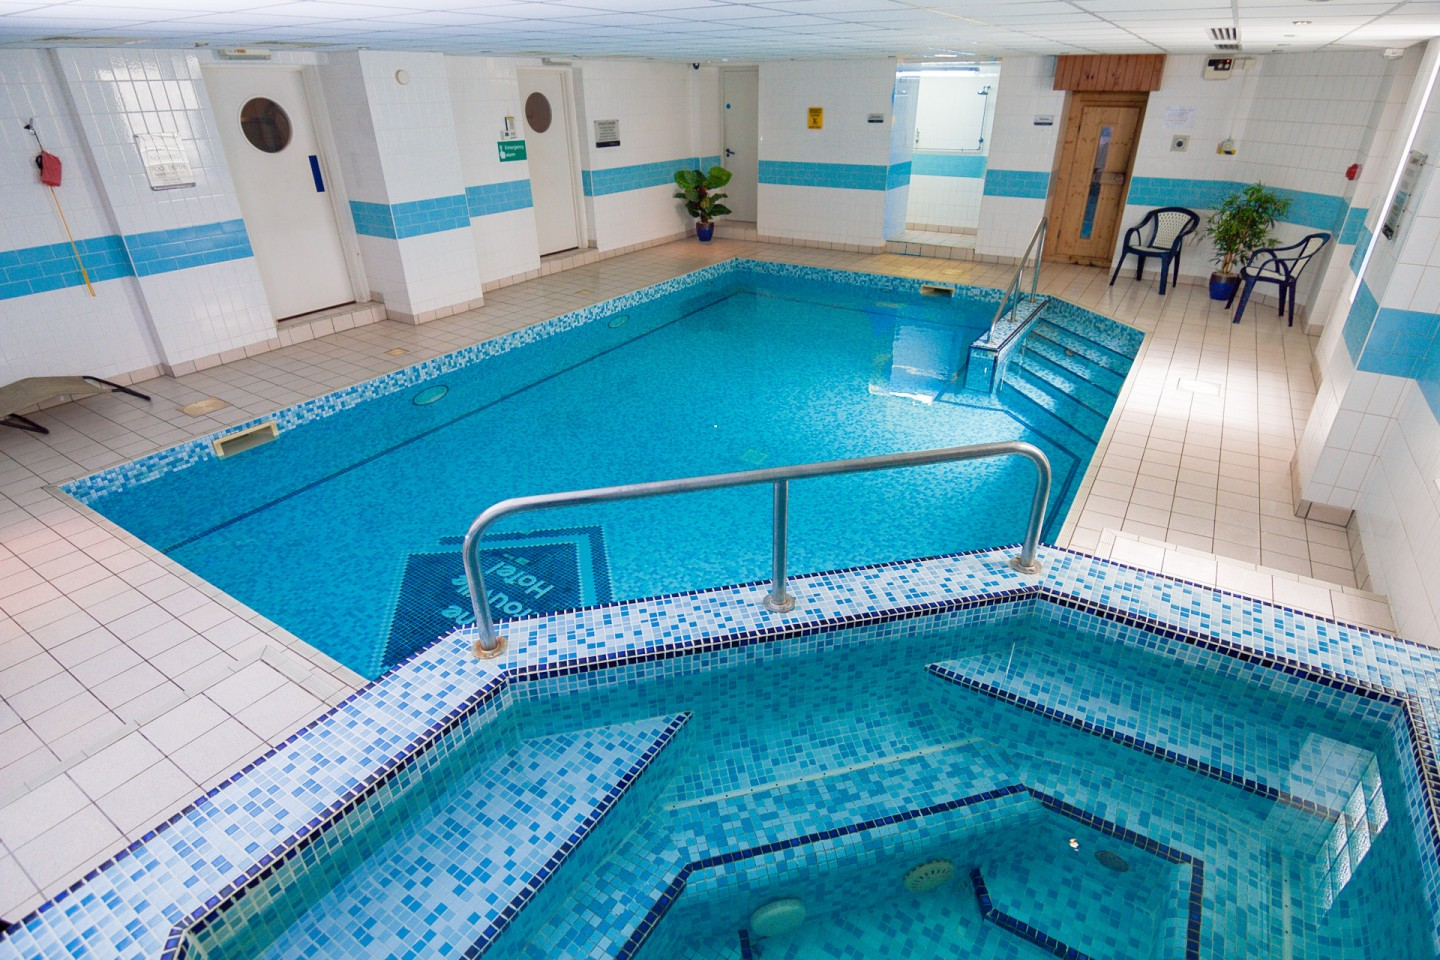 The trouville hotel pool ncn greatdays group travel - Hotels in bournemouth with swimming pool ...